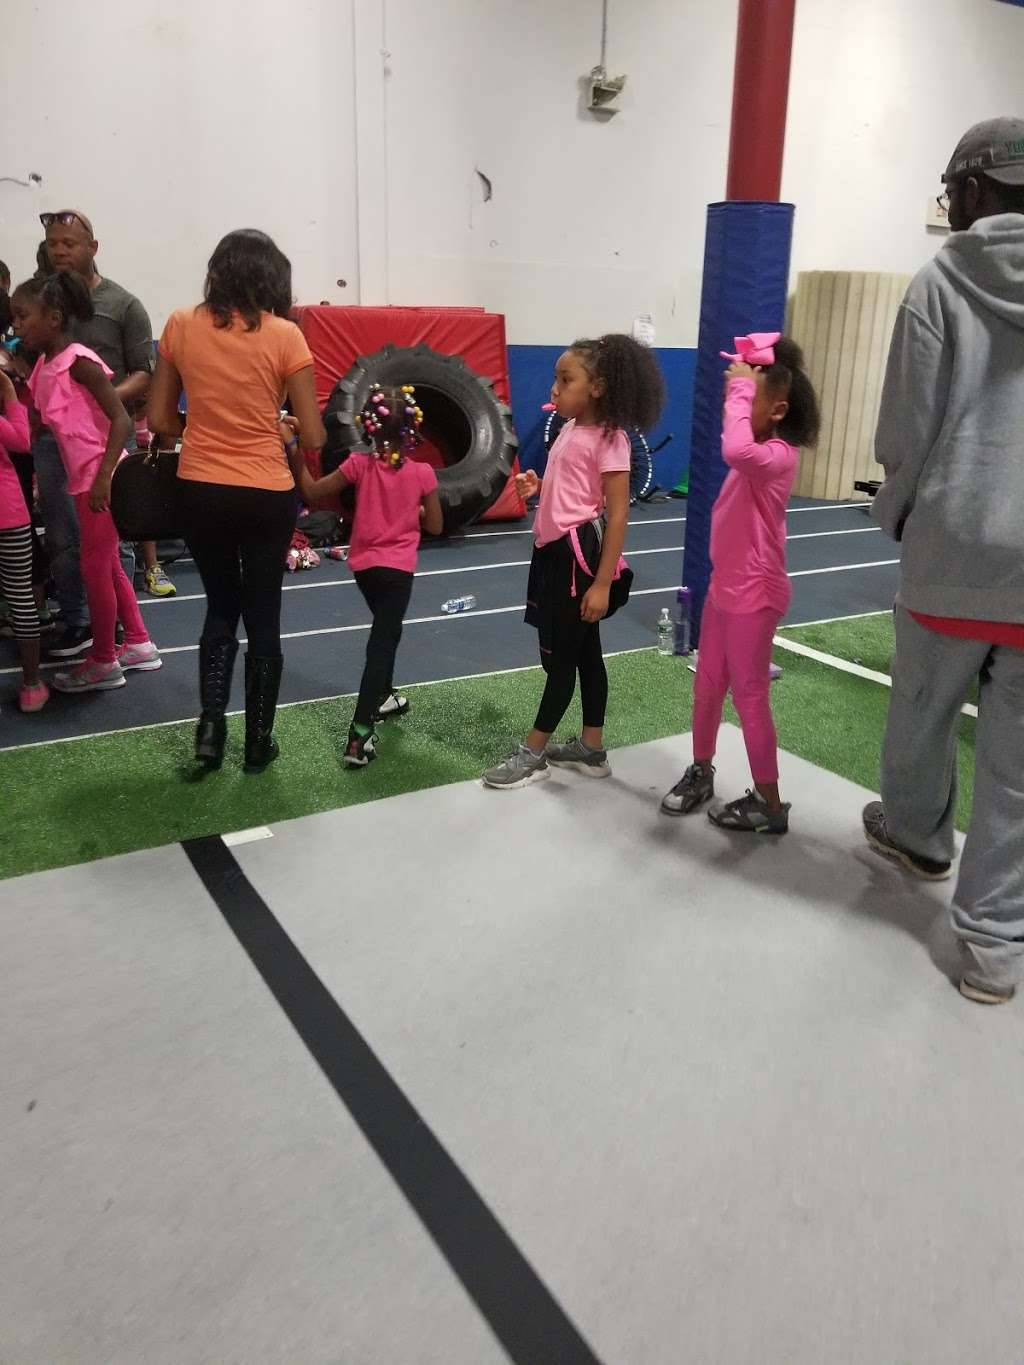 Aspiring Champions Inc - Gym | 970 ski Dr, King of Prussia, PA ... on dubois pa mapquest, west chester pa mapquest, greenville mapquest, erie mapquest, valley forge pa mapquest,